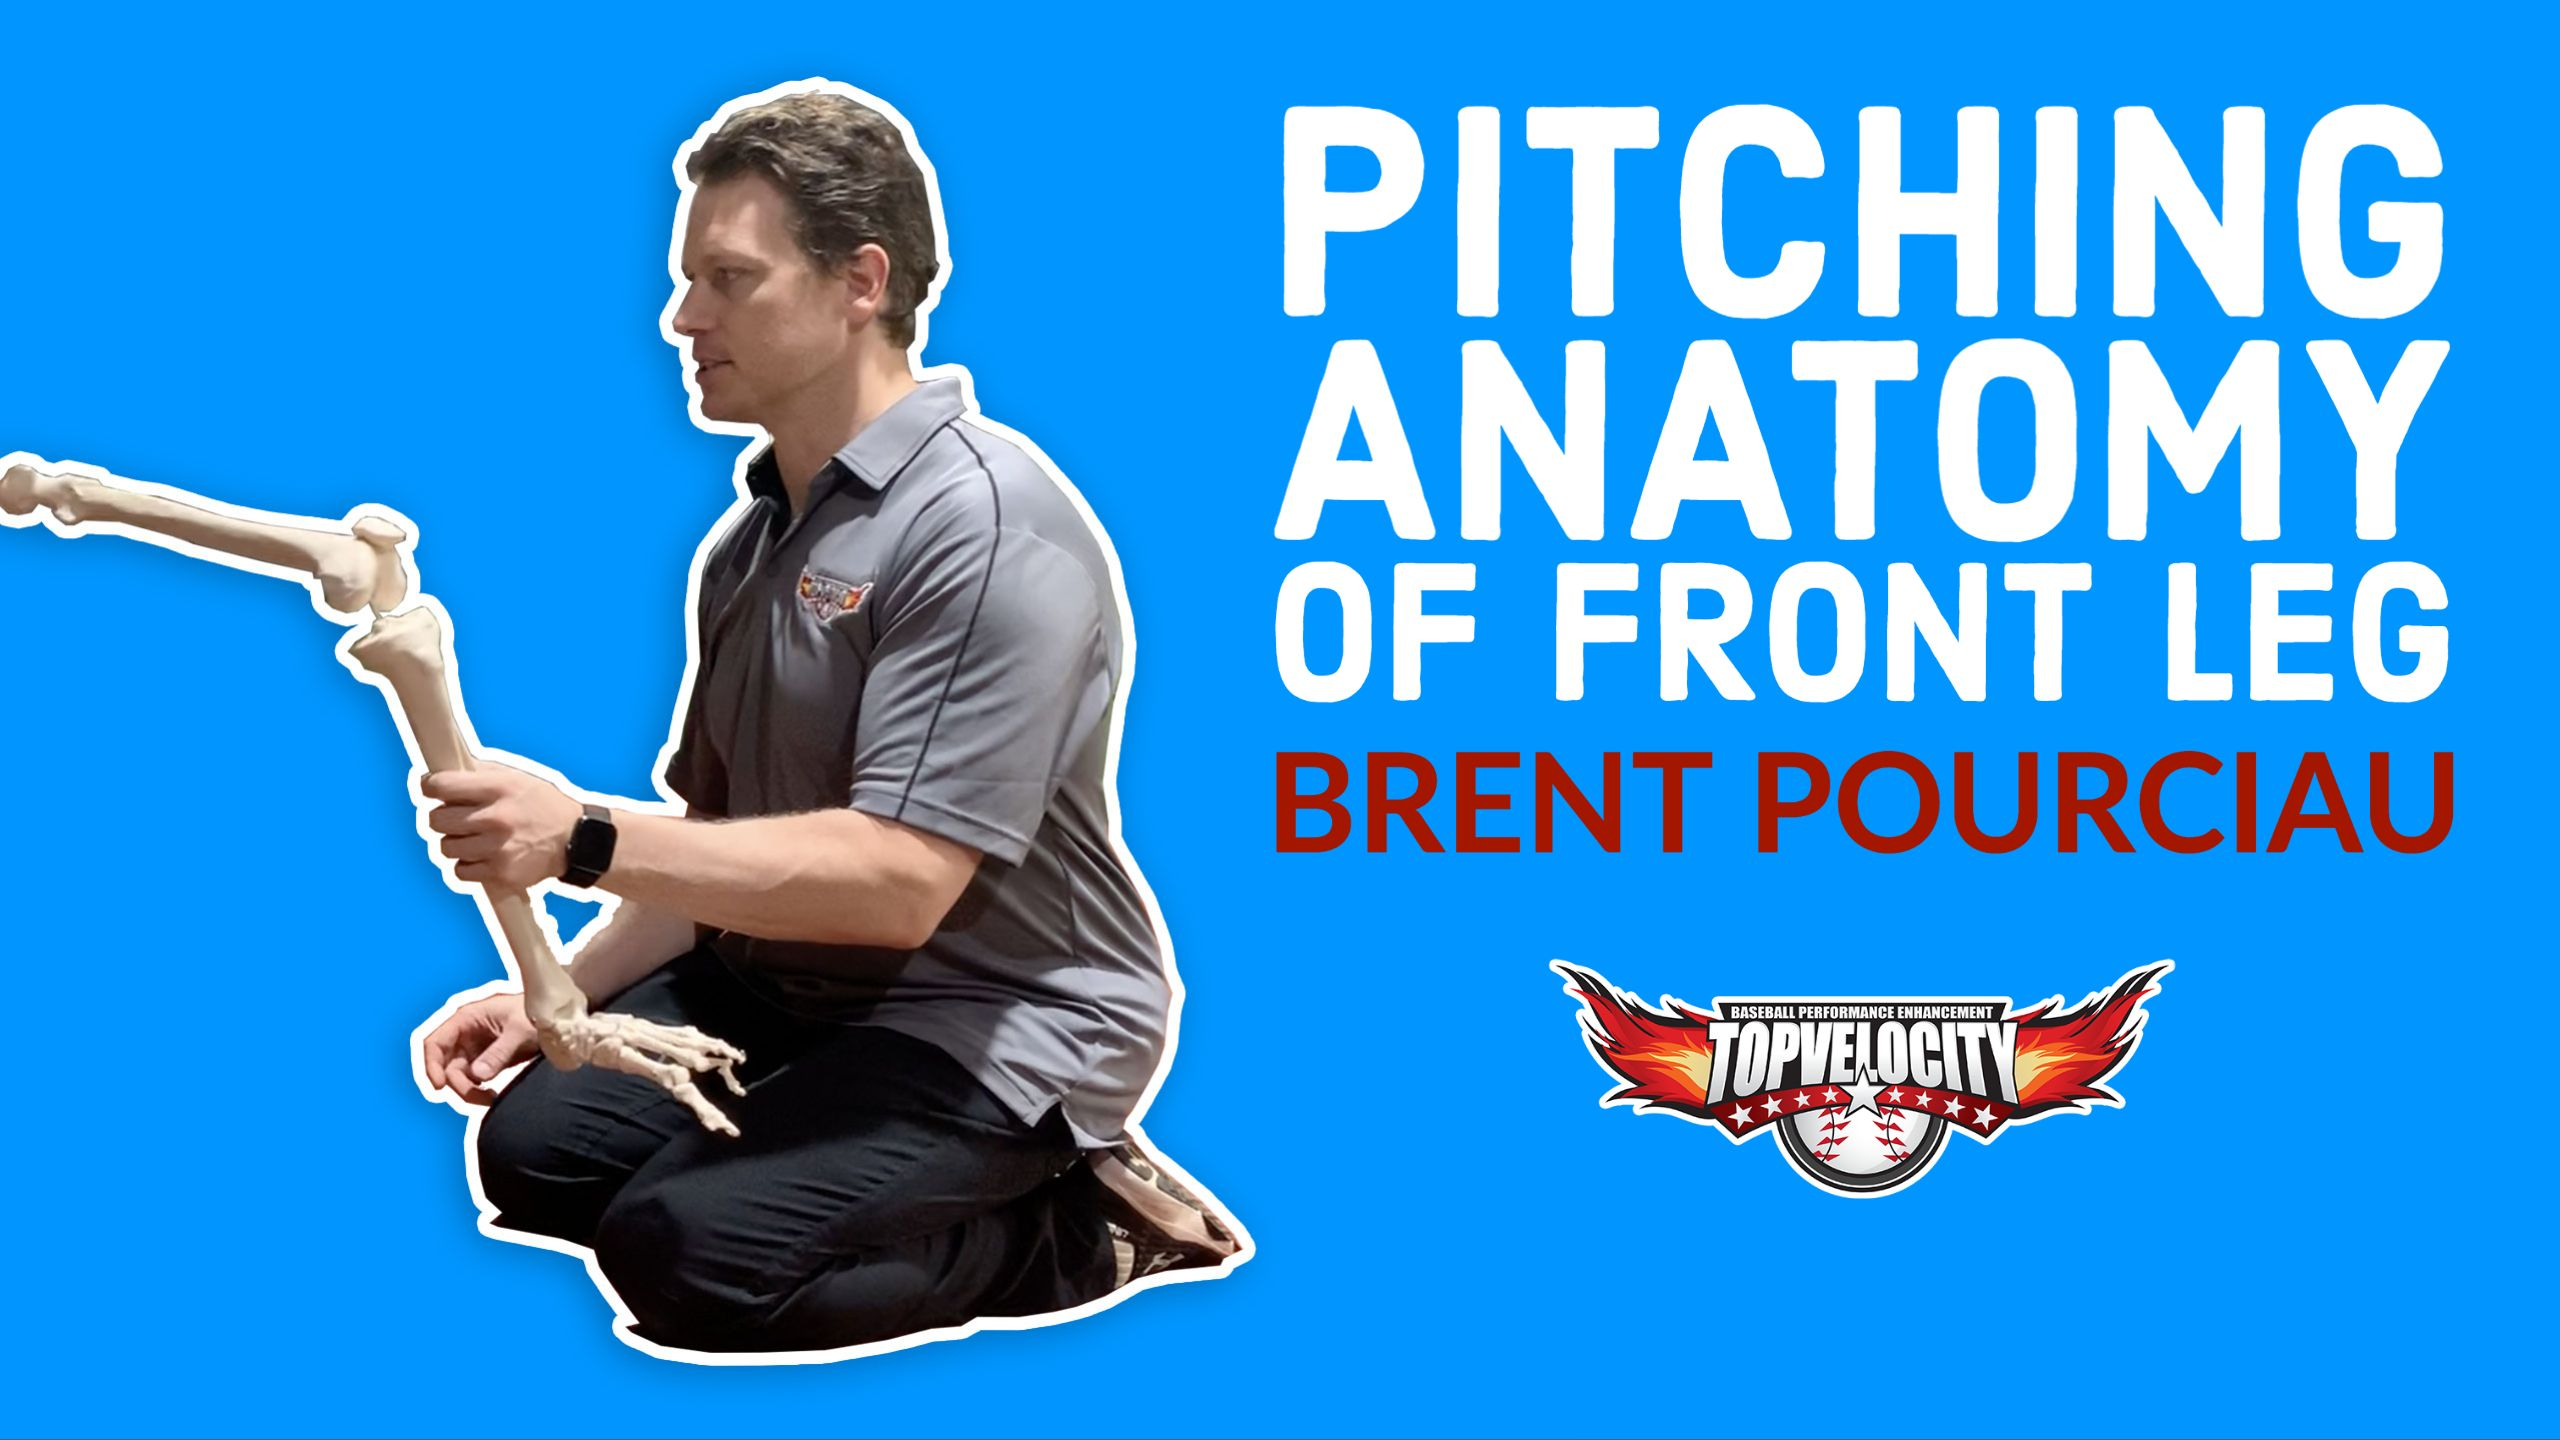 Pitching Anatomy Of The Front Leg In 2020 Pitching Drills Baseball Drills Anatomy